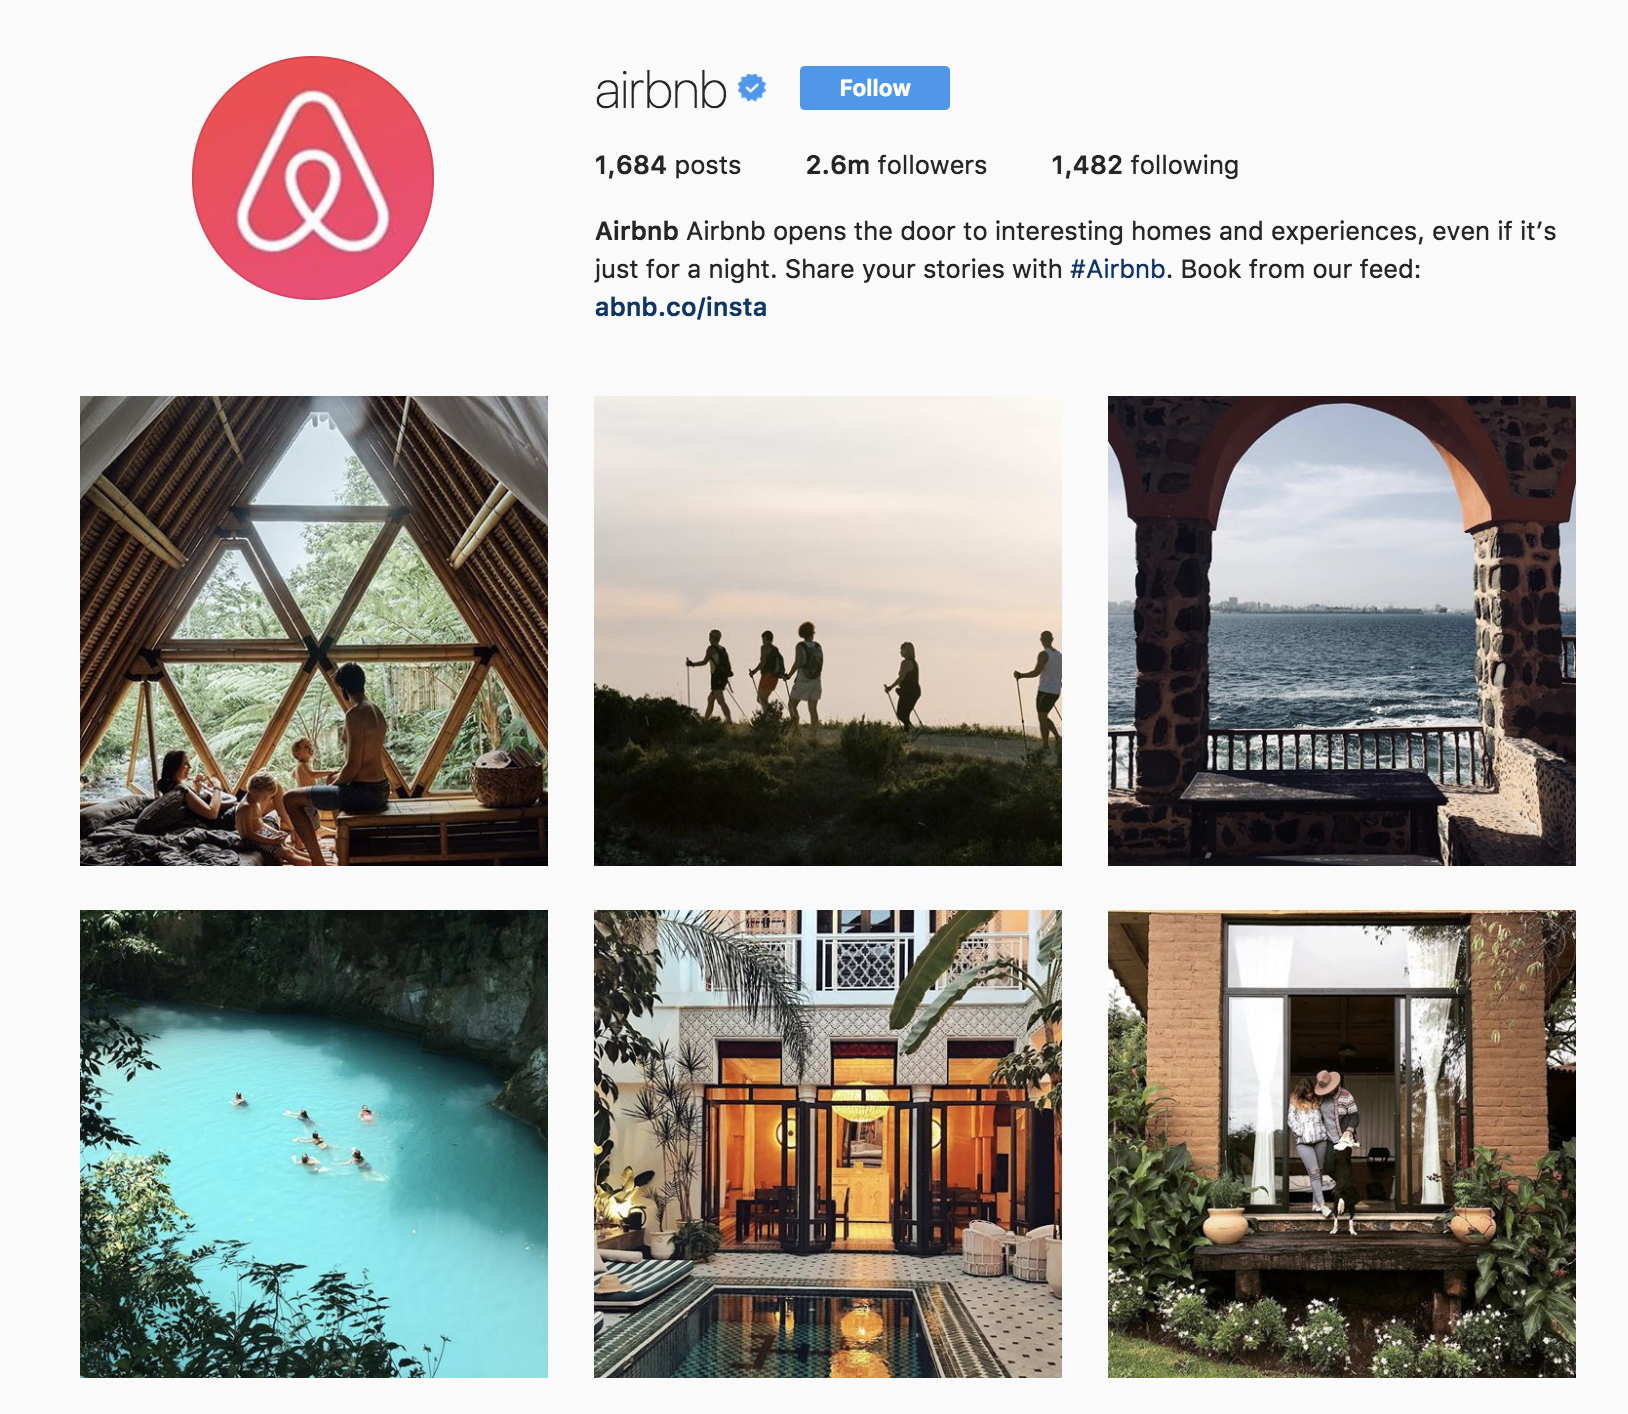 airbn-best-brands-on-instagram